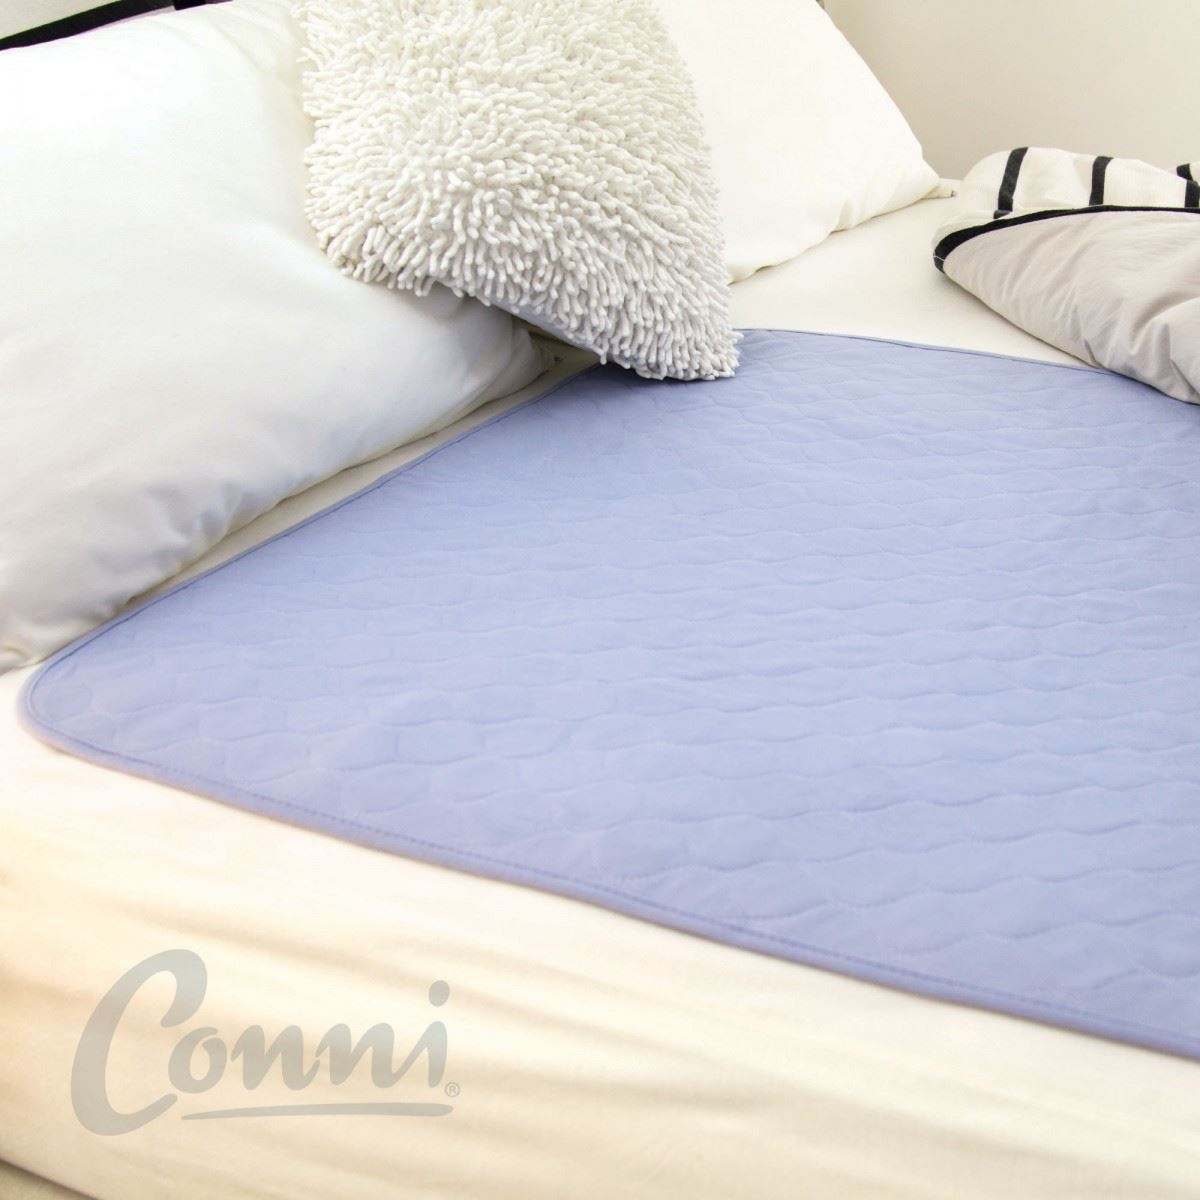 Picture of Conni Kids Mate Bed Pad